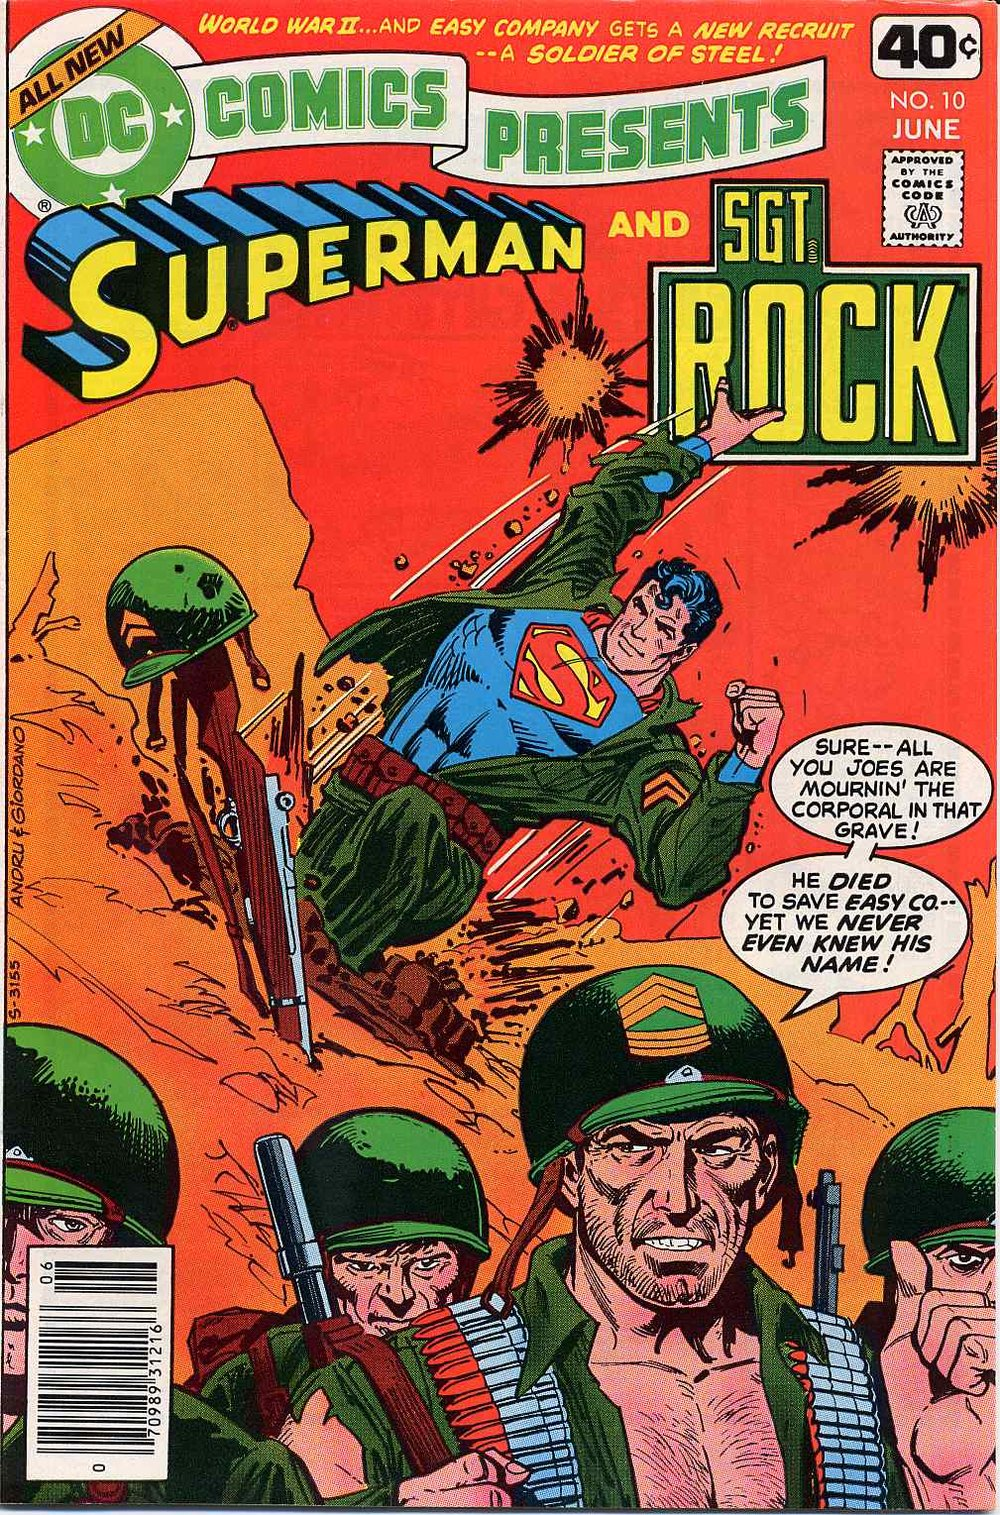 DC Comics Presents (1978) #10, written by Cary Bates. Cover by Ross Andru & Dick Giordano.